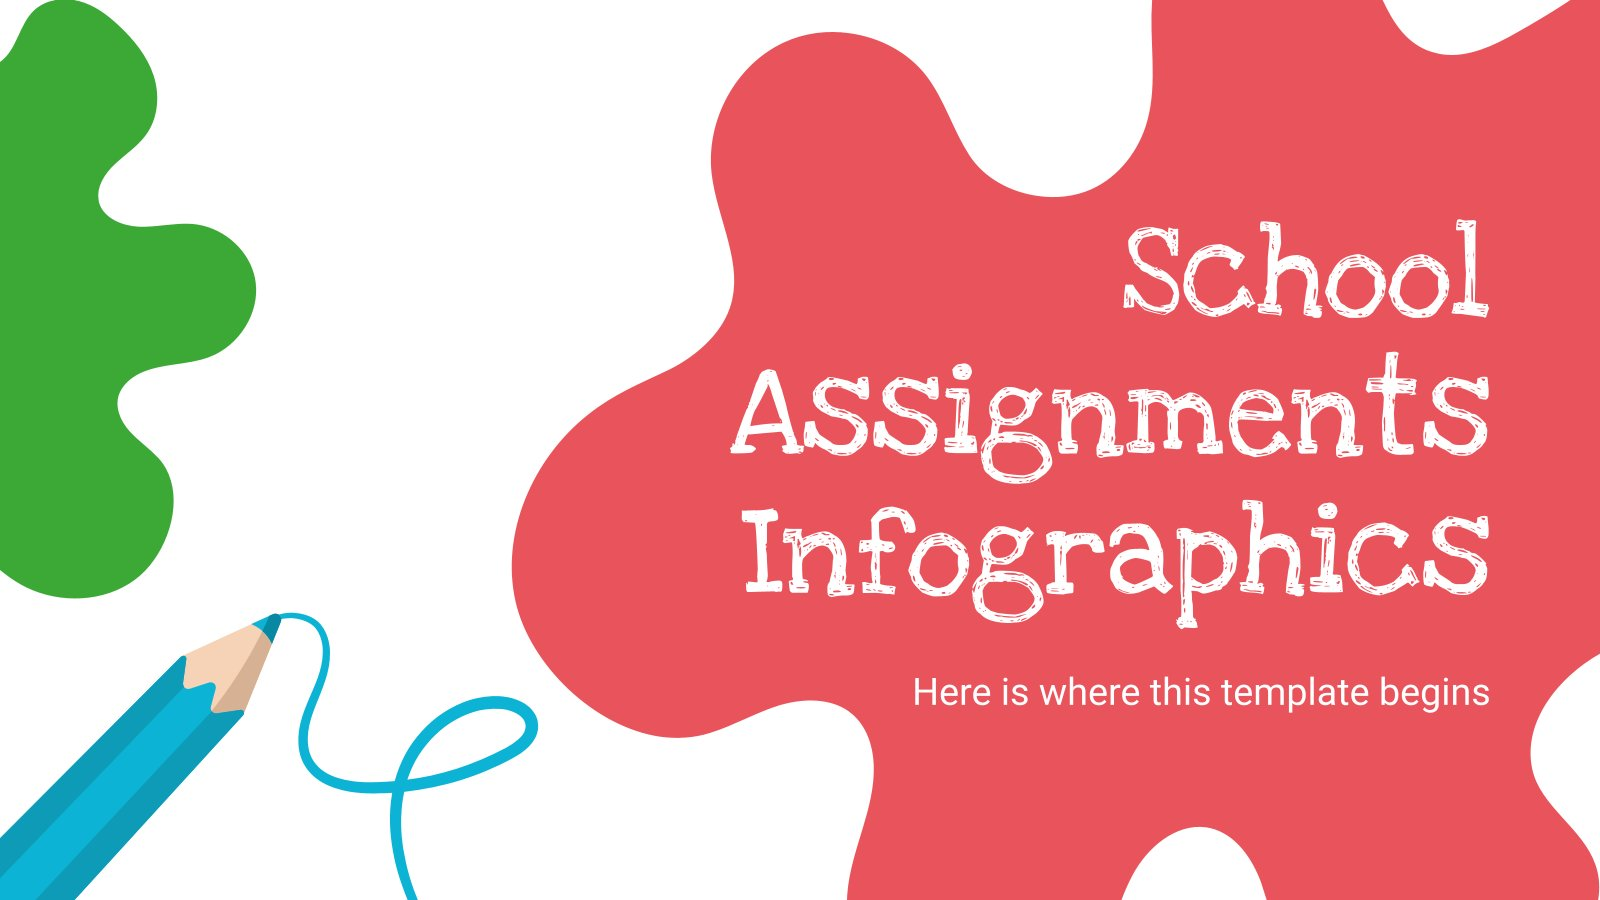 School Assignments Infographics presentation template